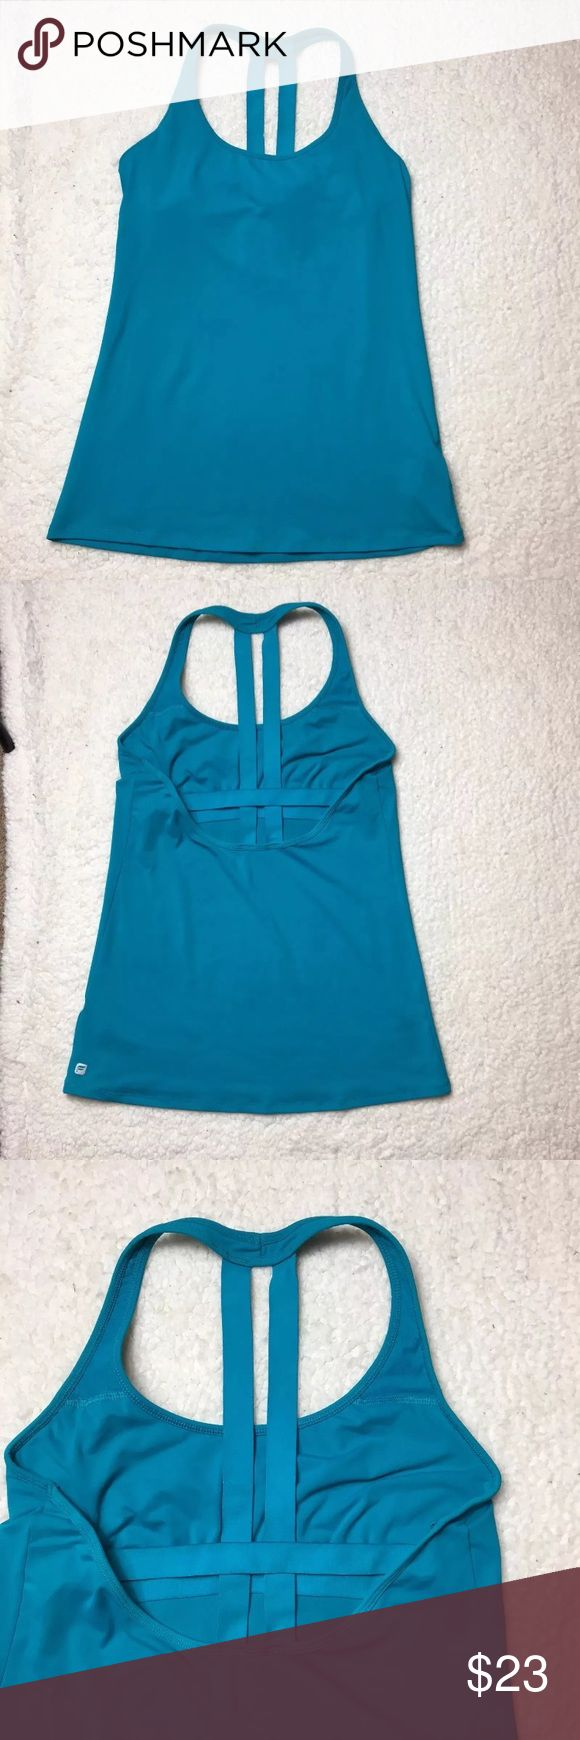 Real blue fabletics strappy back workout tank top Excellent pre owned condition fabletics blue strap back workout top with no flaws. Measurements taken while laid flat. Armpit to armpit 15 inches, length 25.5 inches. Fabletics Tops Tank Tops